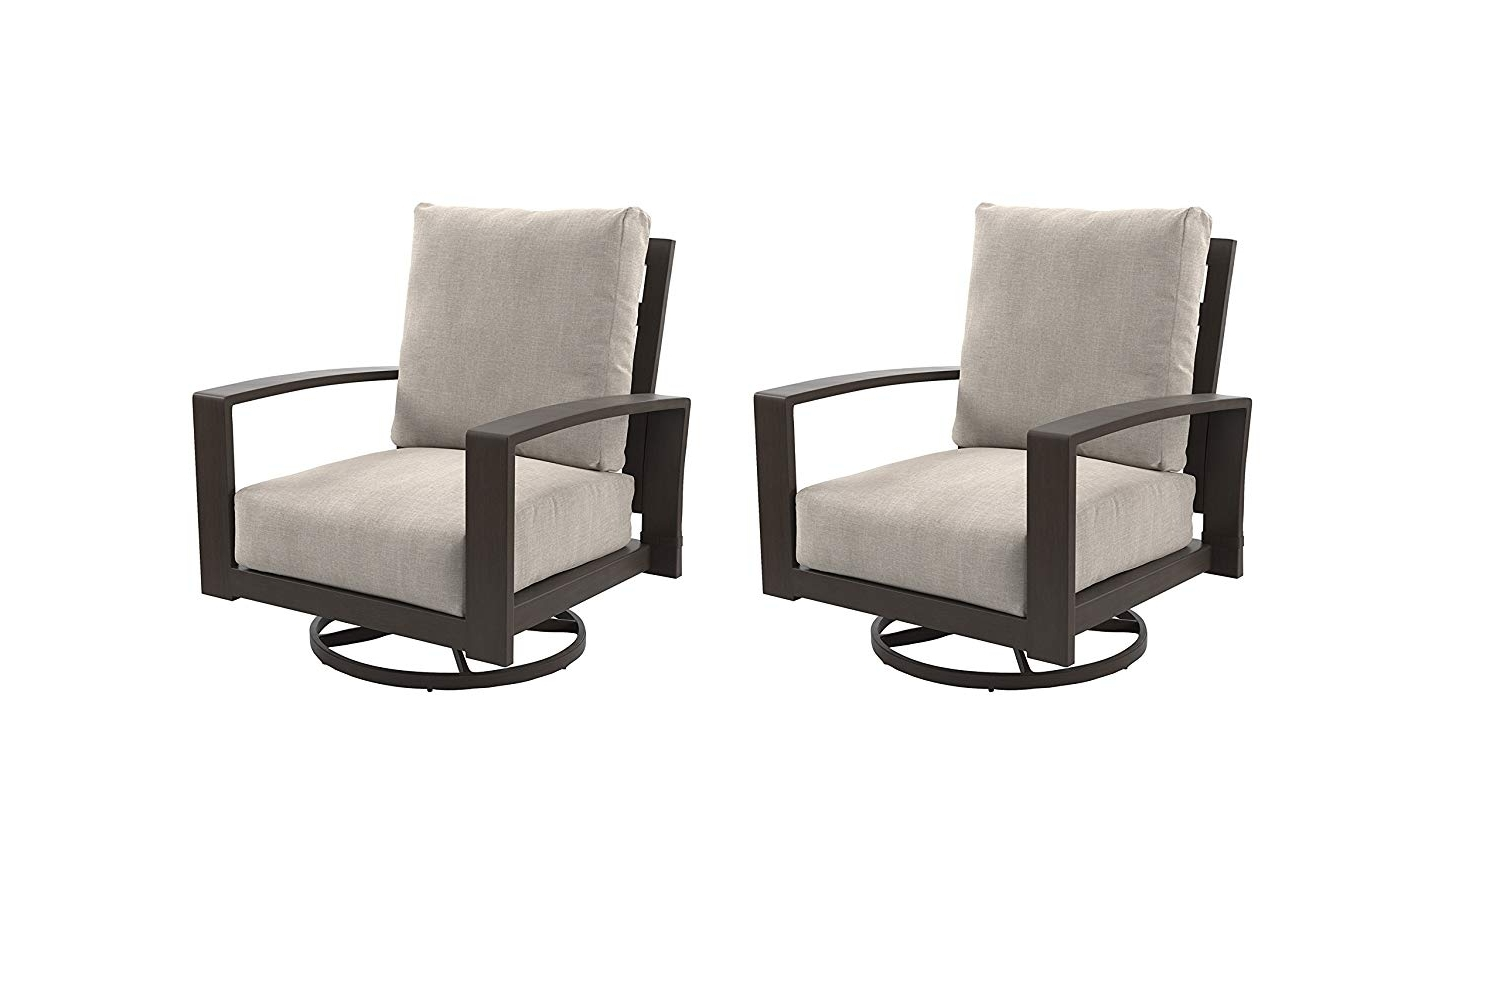 Amazon : Ashley Furniture Signature Design – Cordova Reef With Regard To Current Alexa Reef Side Chairs (View 8 of 20)